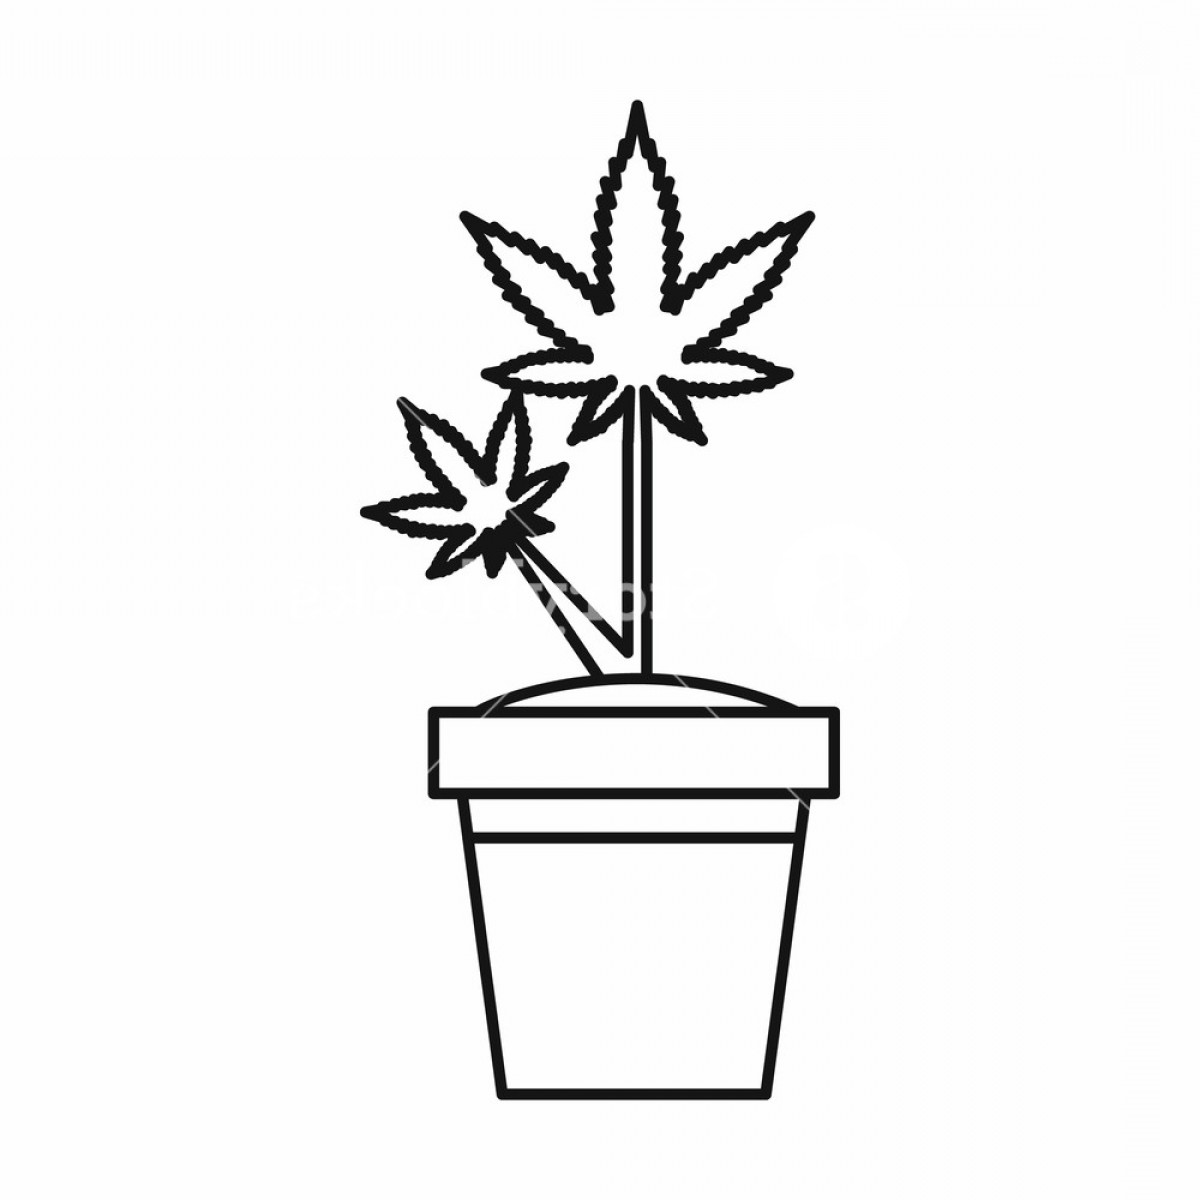 Black And White Vector Image Of Weed Plants: Marijuana Plant In Pot Icon In Outline Style Isolated On White Background Vector Illustration Rexggjhzjfzqgxu